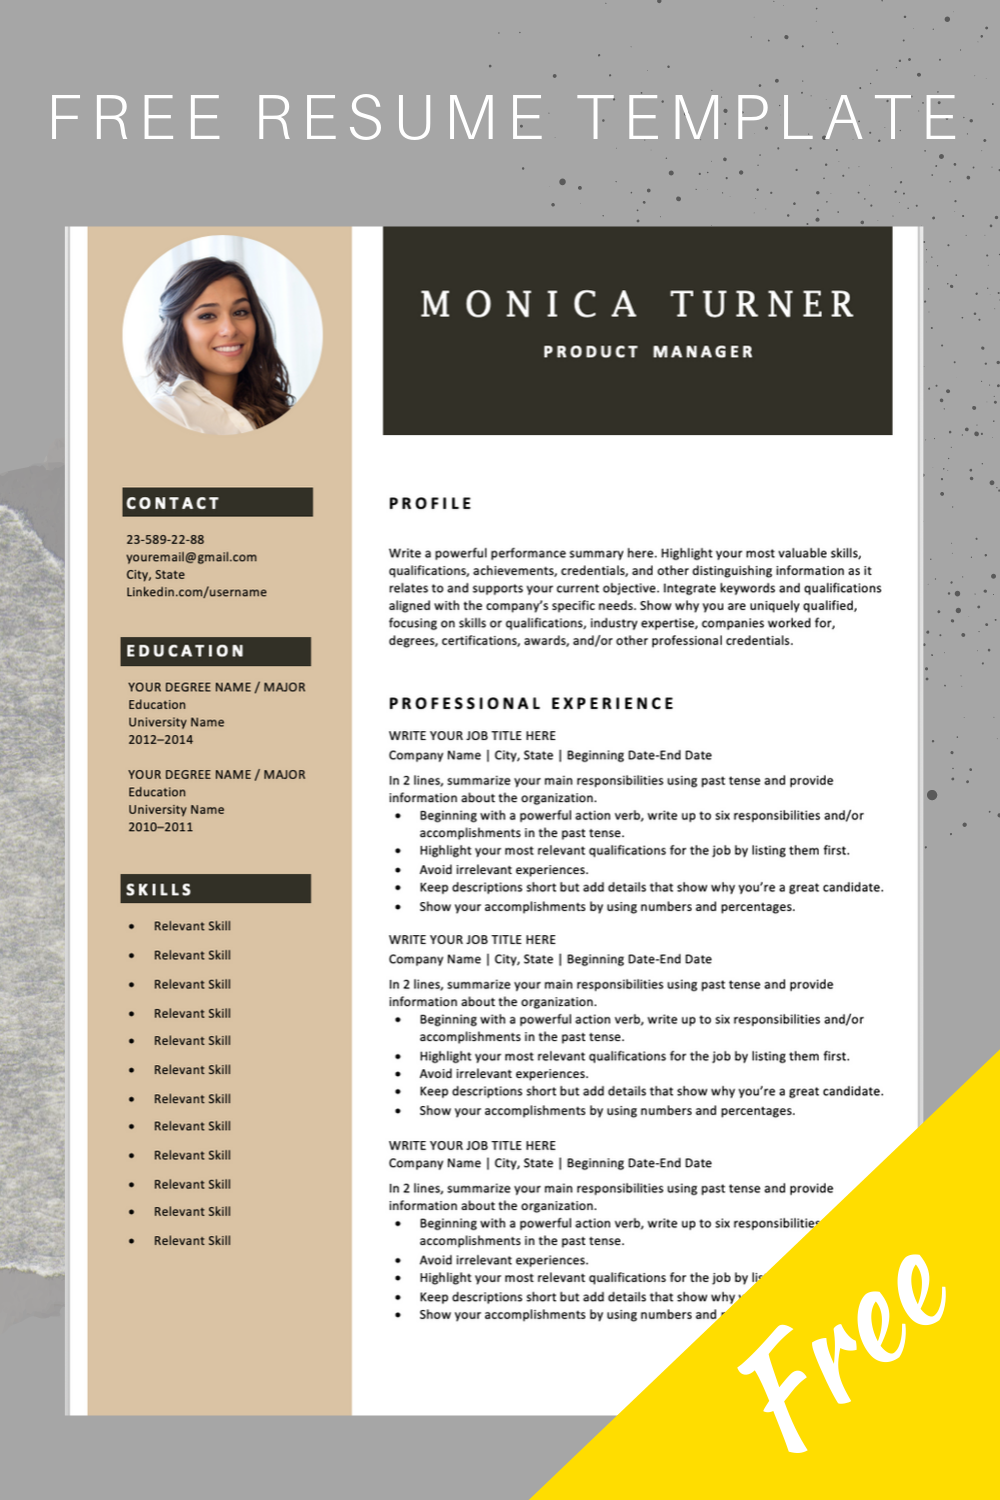 Download This Professional Resume Template You Can Easily Adjust It In Microsoft Word And Save It In Pdf If Needed Sign Up For Our Job Search Tips A Pendidikan